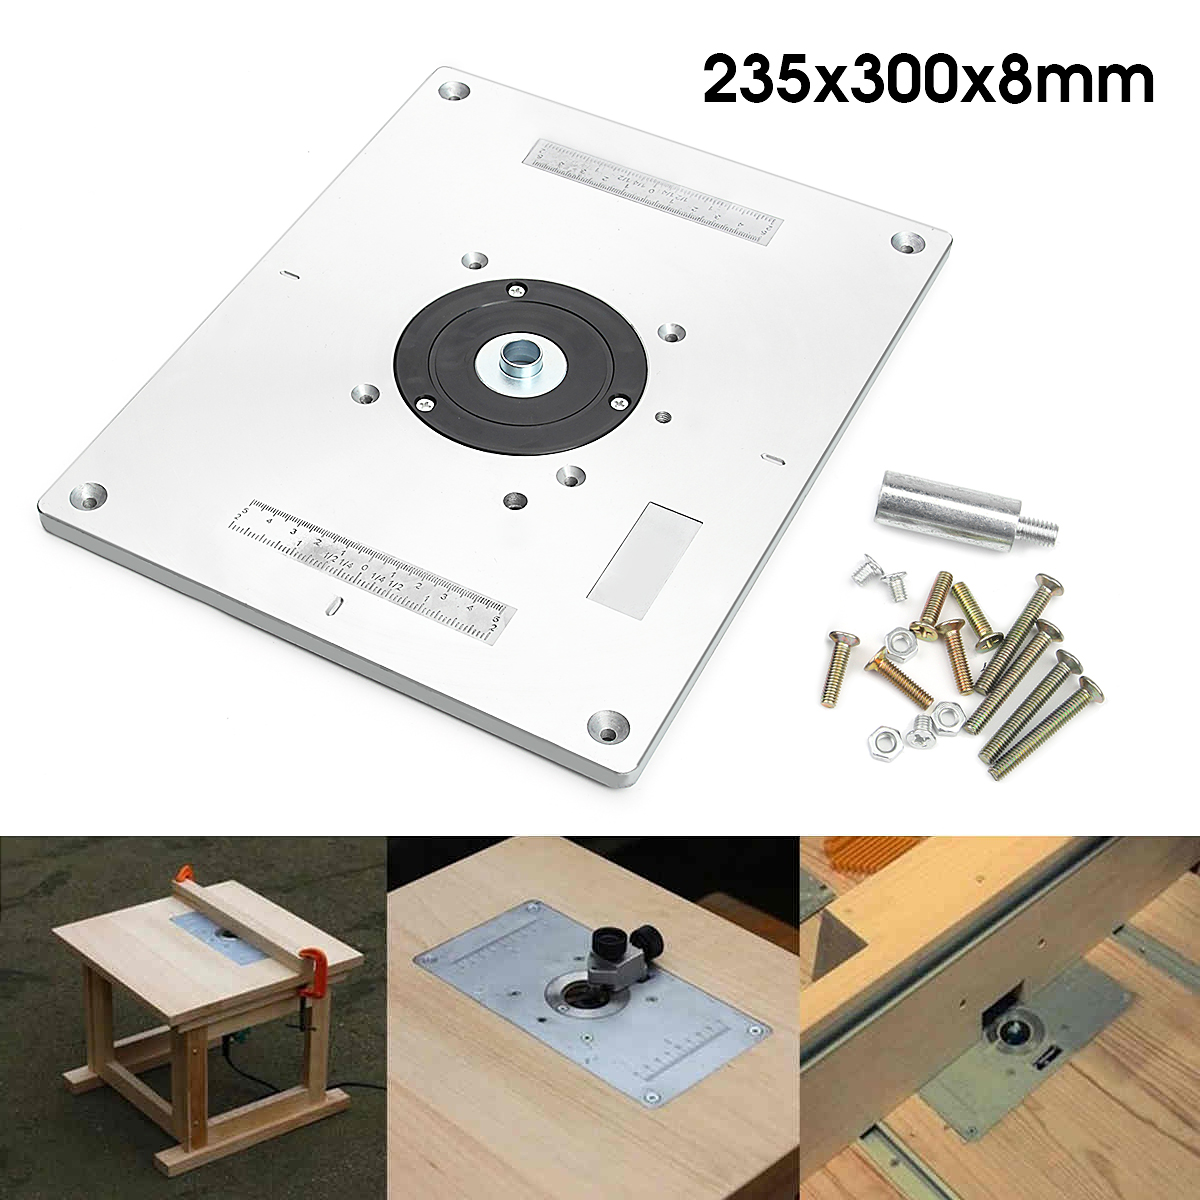 Aluminum router table insert plate 235mm x 300mm x 8mm for aluminum router table insert plate 235mm x 300mm x 8mm for woodworking benches greentooth